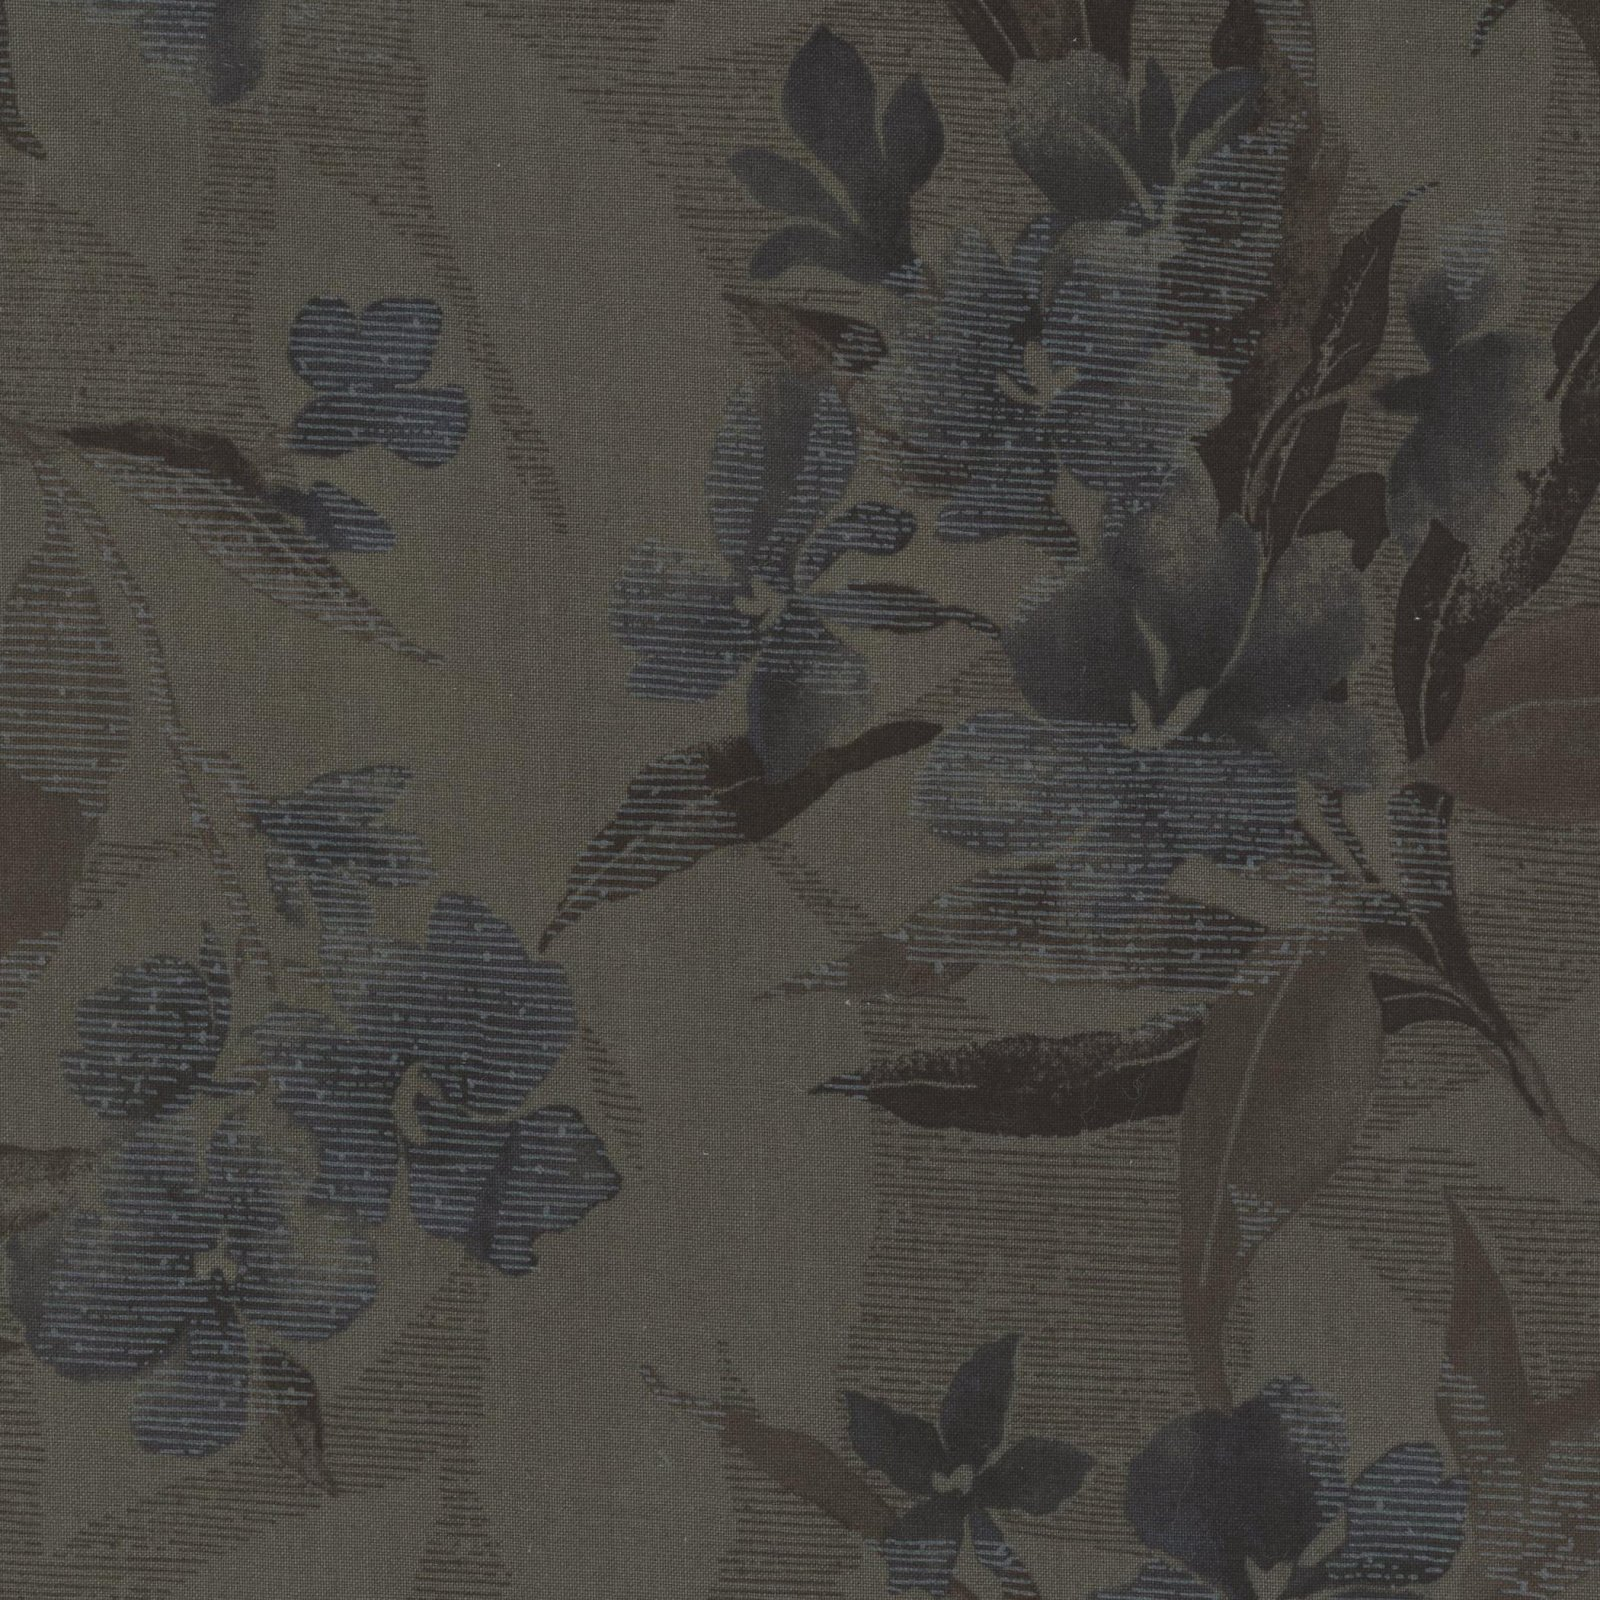 Remnant - 1 yard cut - Daiwabo Taupe with Navy Flowers